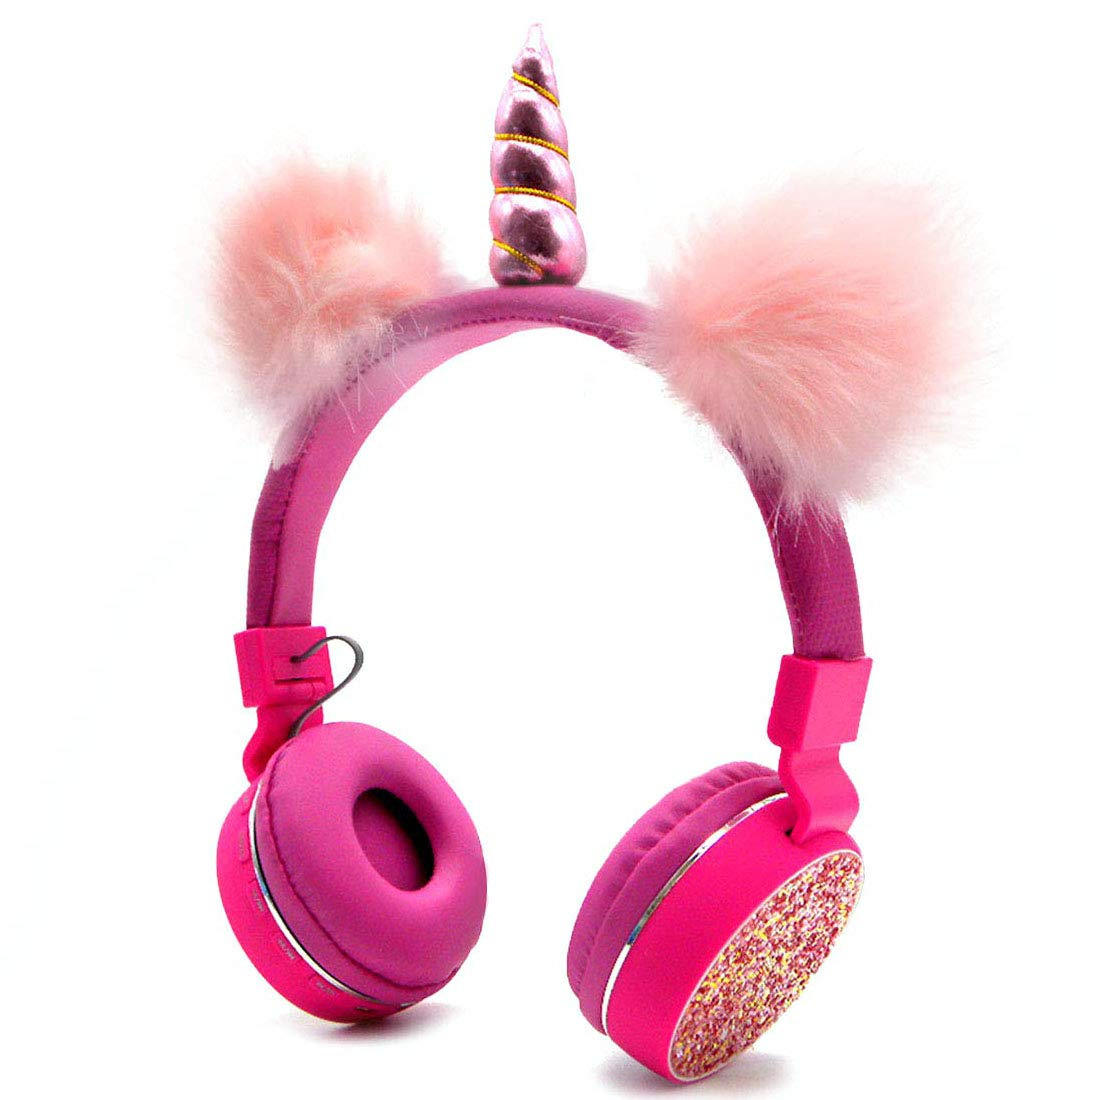 Bluetooth 5.0 Unicorns Headphones with Fluffy Cat Ears for Kids, Kids Headband Earphone Foldable Headset Rechargeable Support TF Card, FM, Aux in Pink